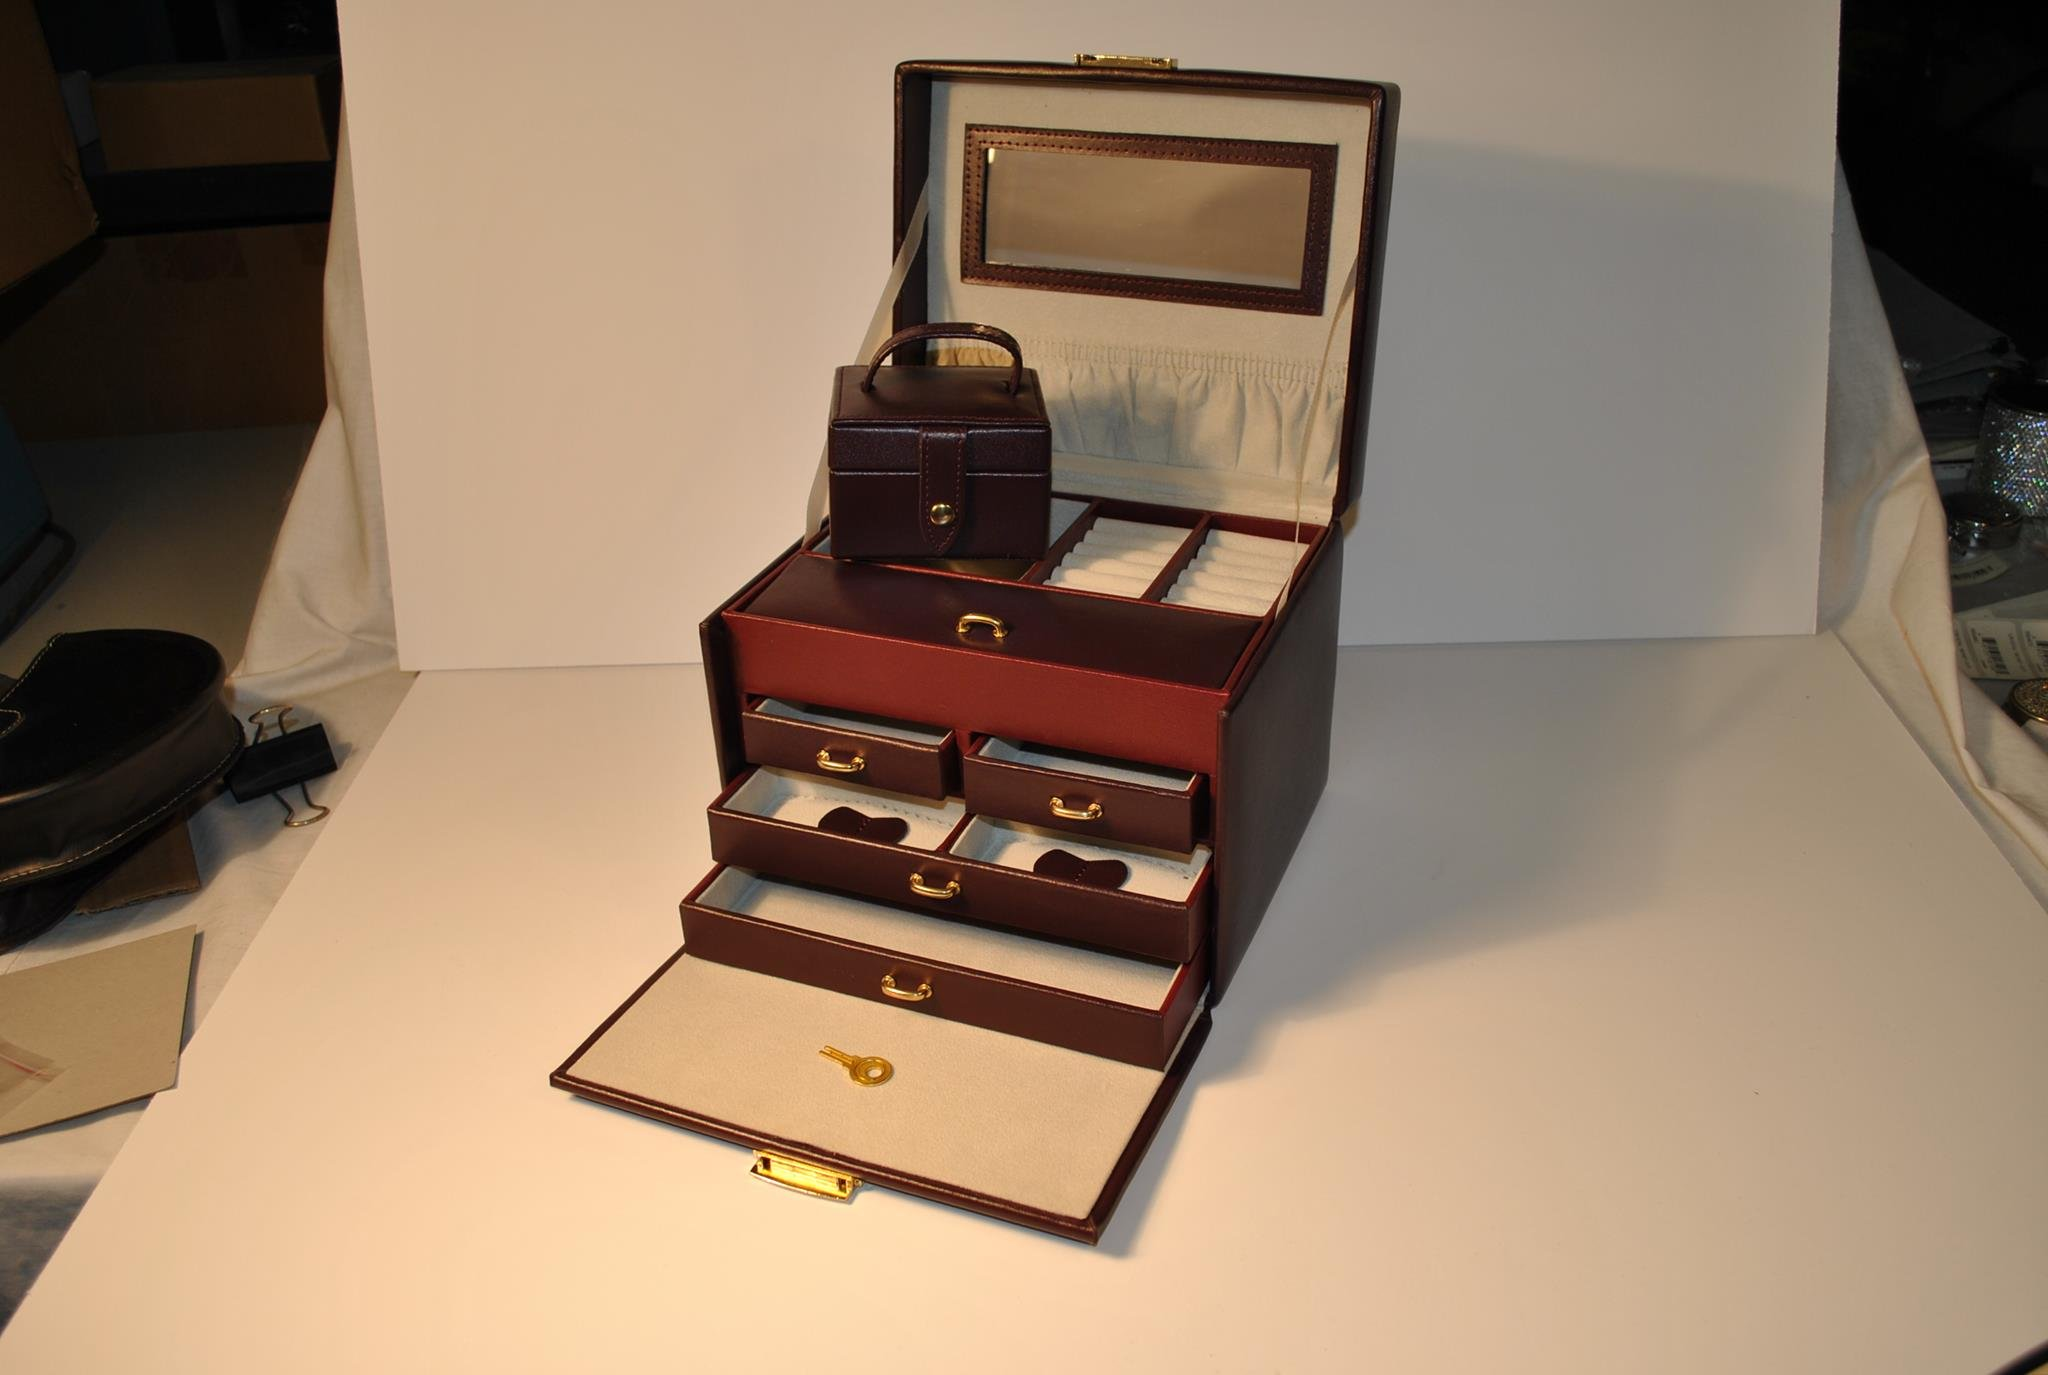 Budd Leather 4-Drawer Jewel Box with Travel Box, Large, Burgundy by Budd Leather (Image #2)